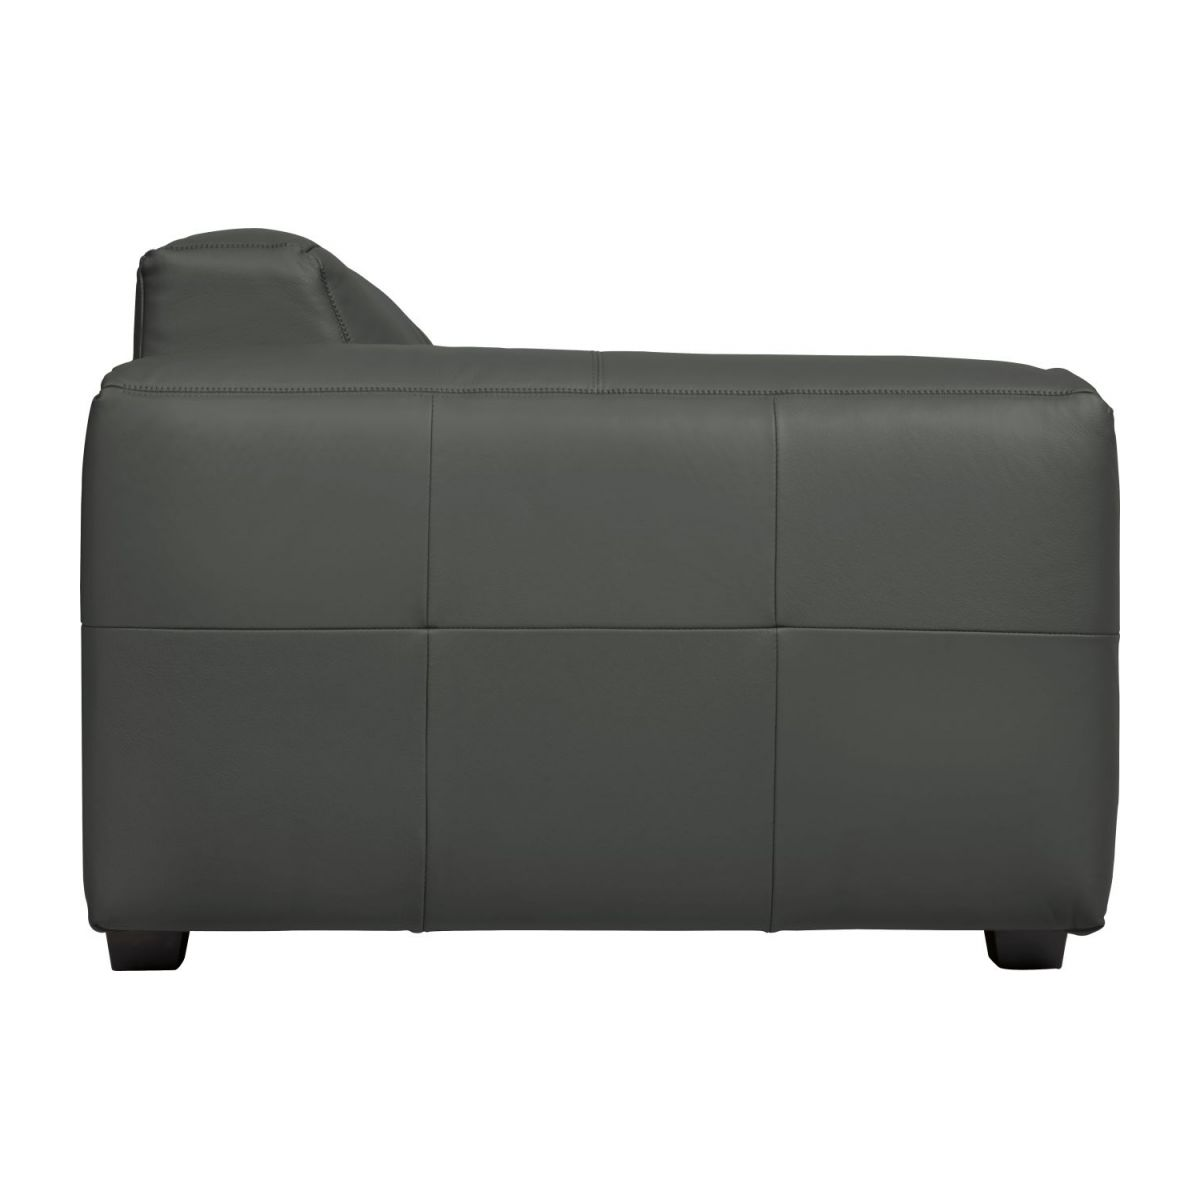 2 seater sofa in Savoy semi-aniline leather, grey n°6